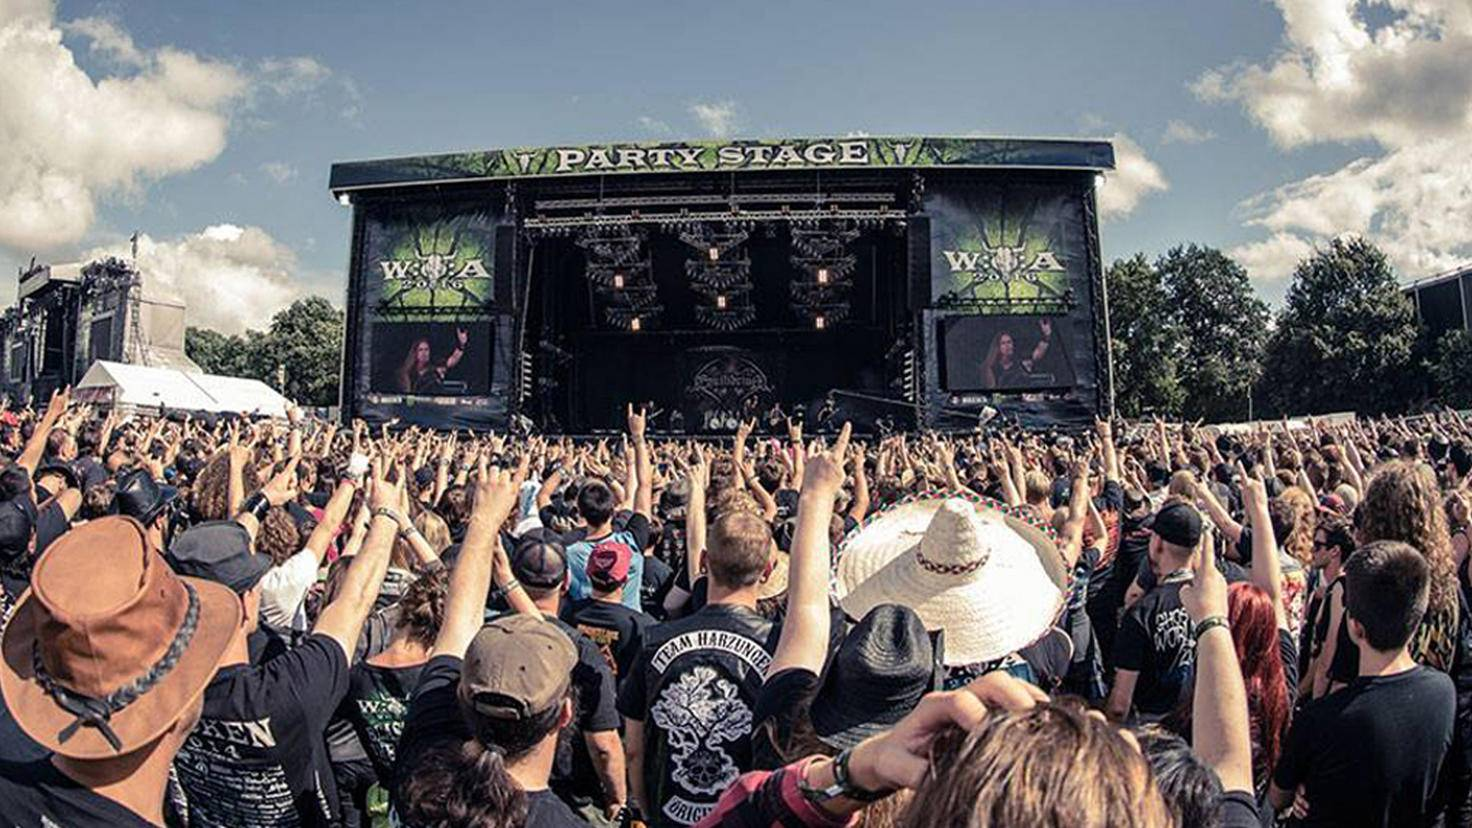 wacken_facebook_wacken_open_air_2016-57c981fd63e1d